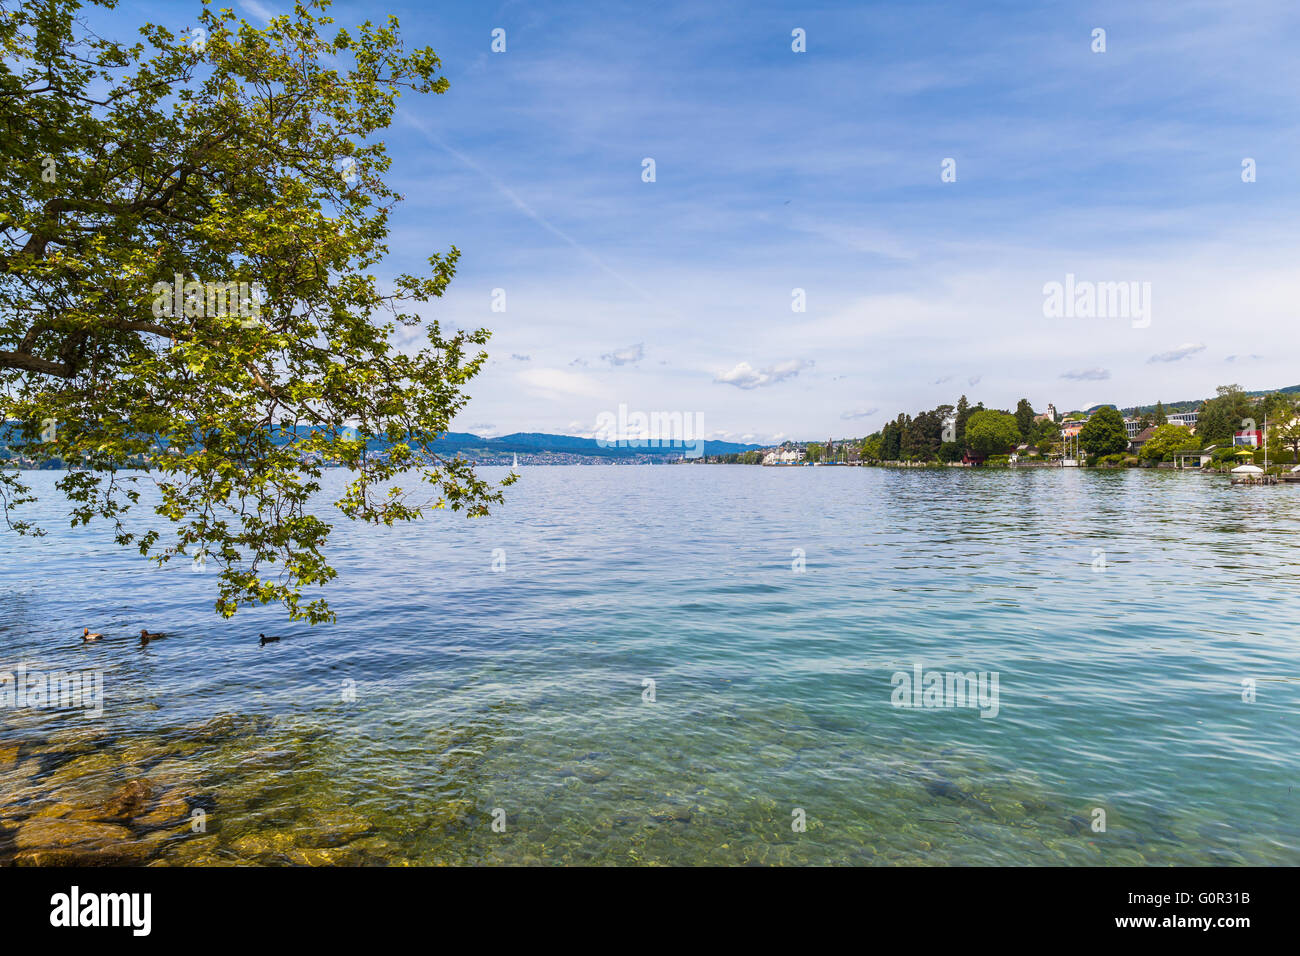 Beautiful view of Zurich Lake with ducks and trees in foreground, Switzerland. - Stock Image